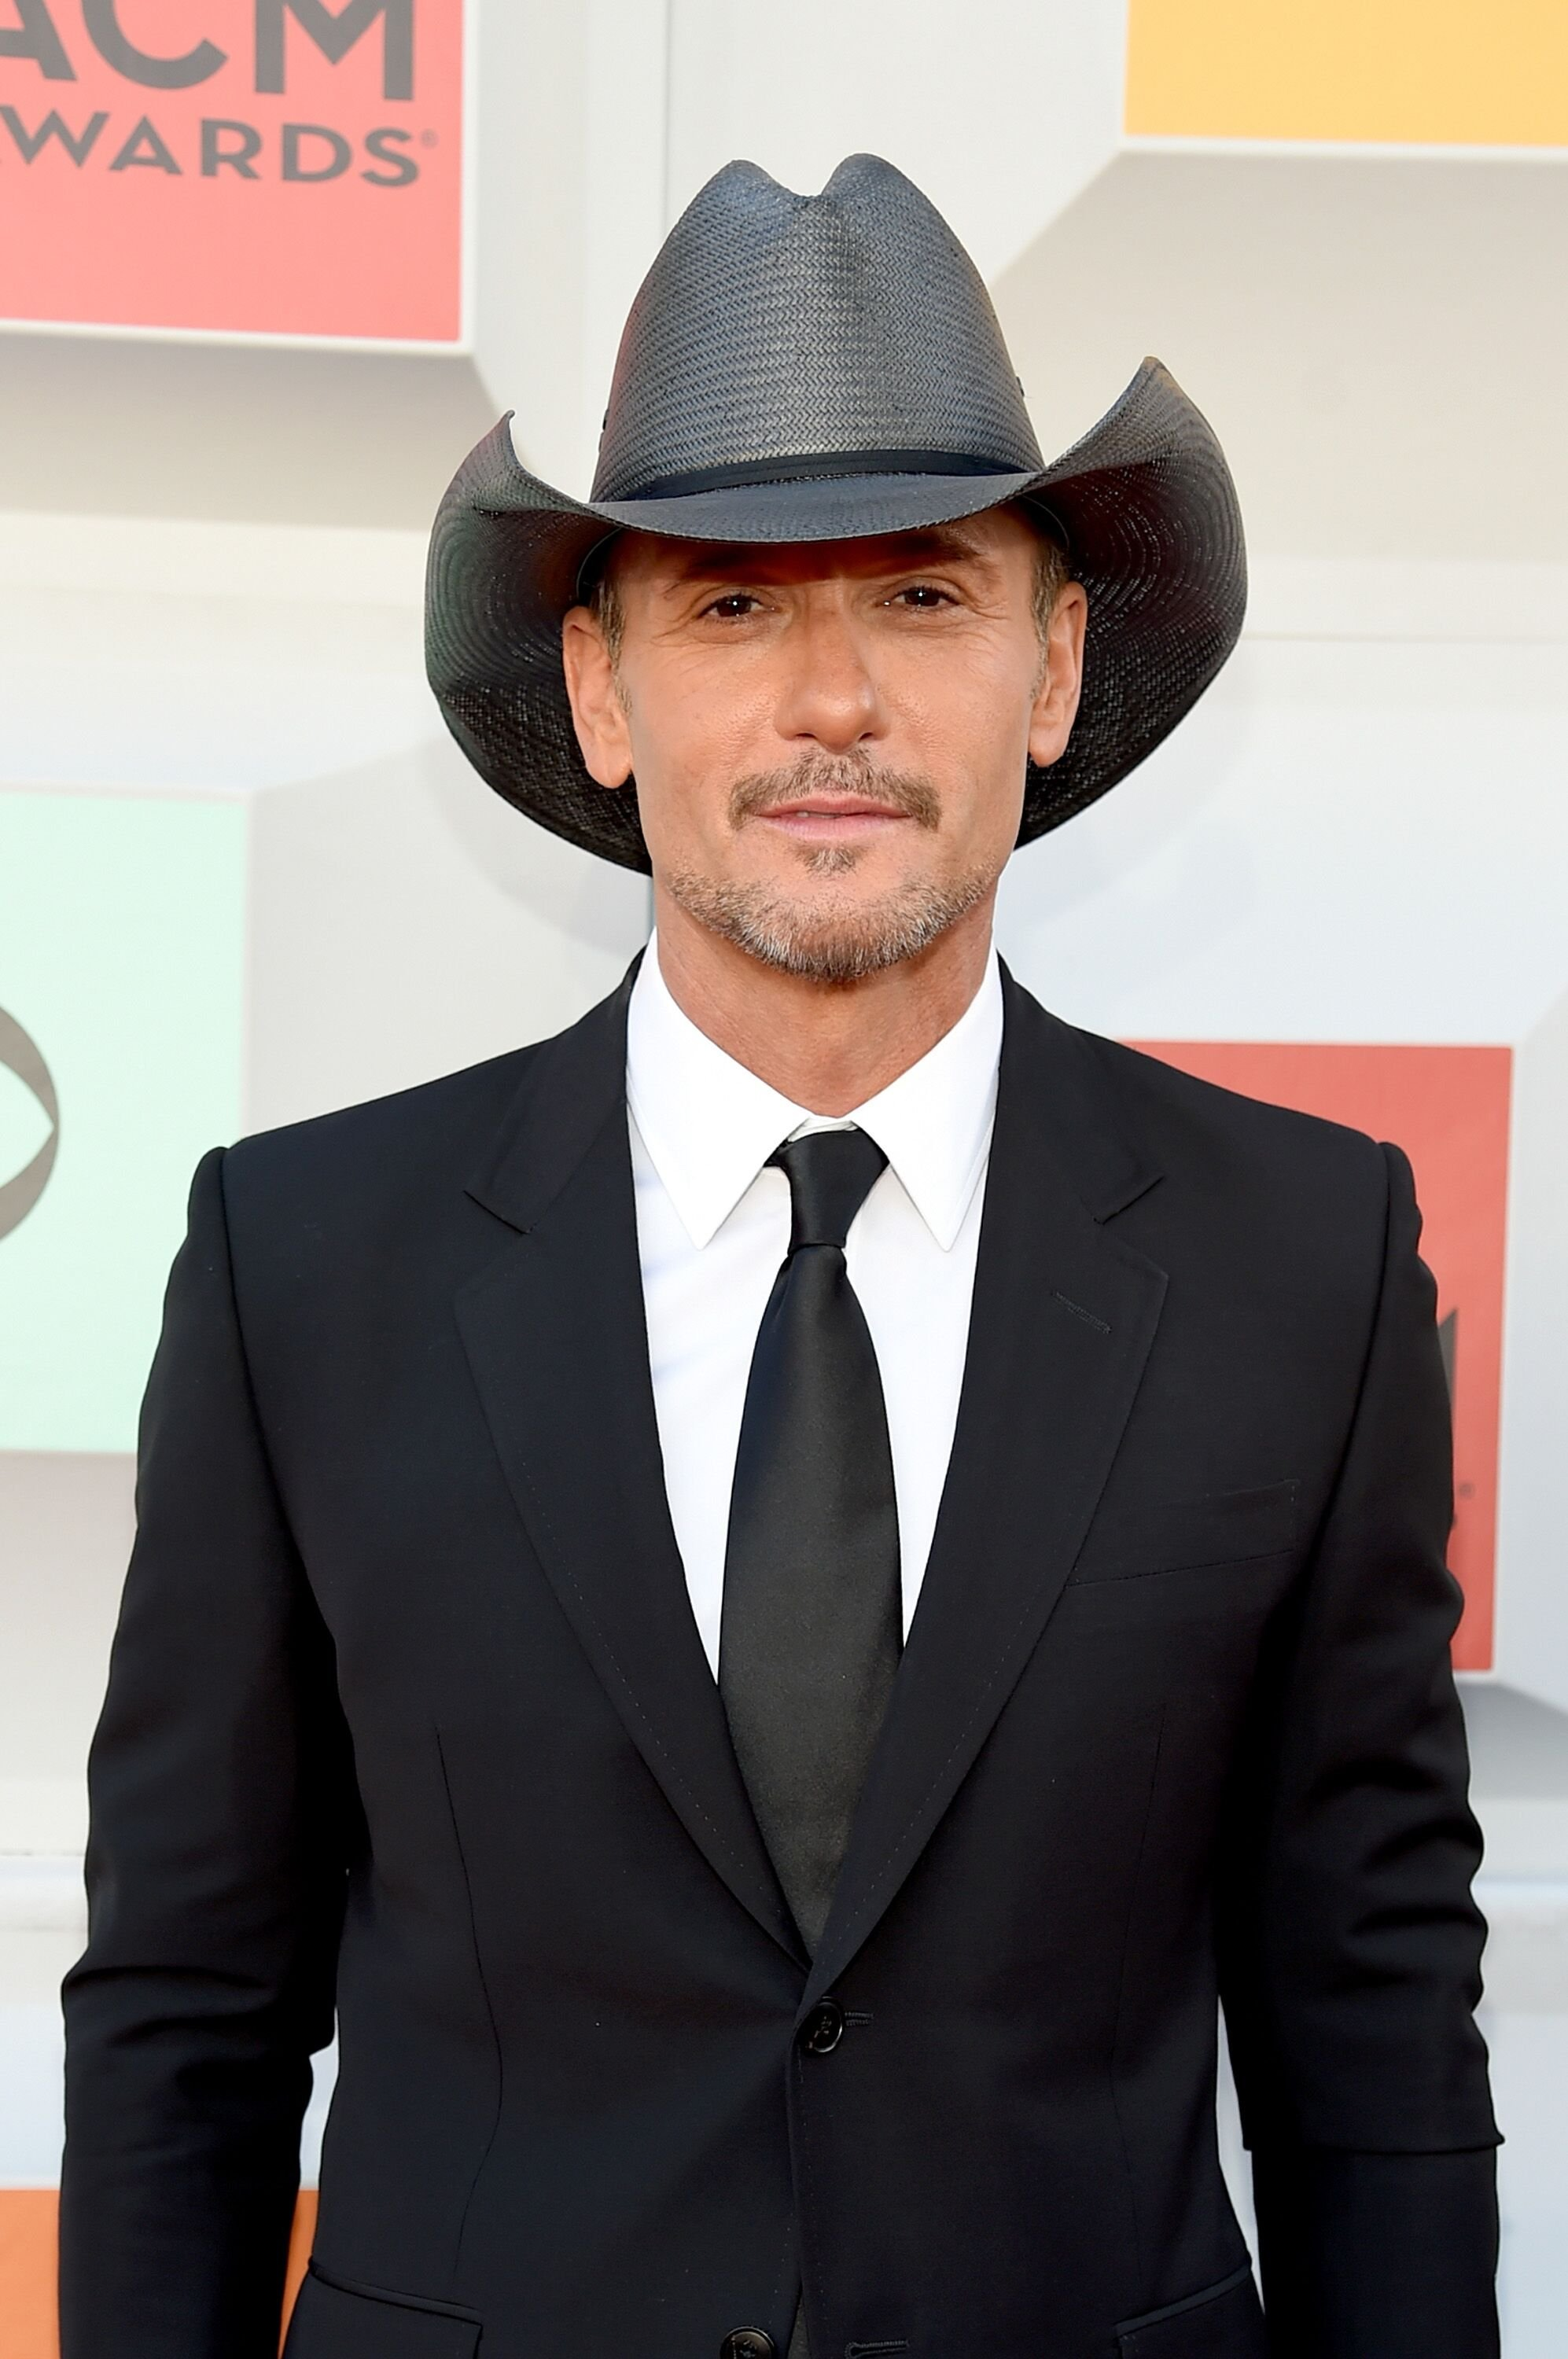 Recording artist Tim McGraw attends the 51st Academy of Country Music Awards at MGM Grand Garden Arena on April 3, 2016 in Las Vegas, Nevada | Photo: Getty Images